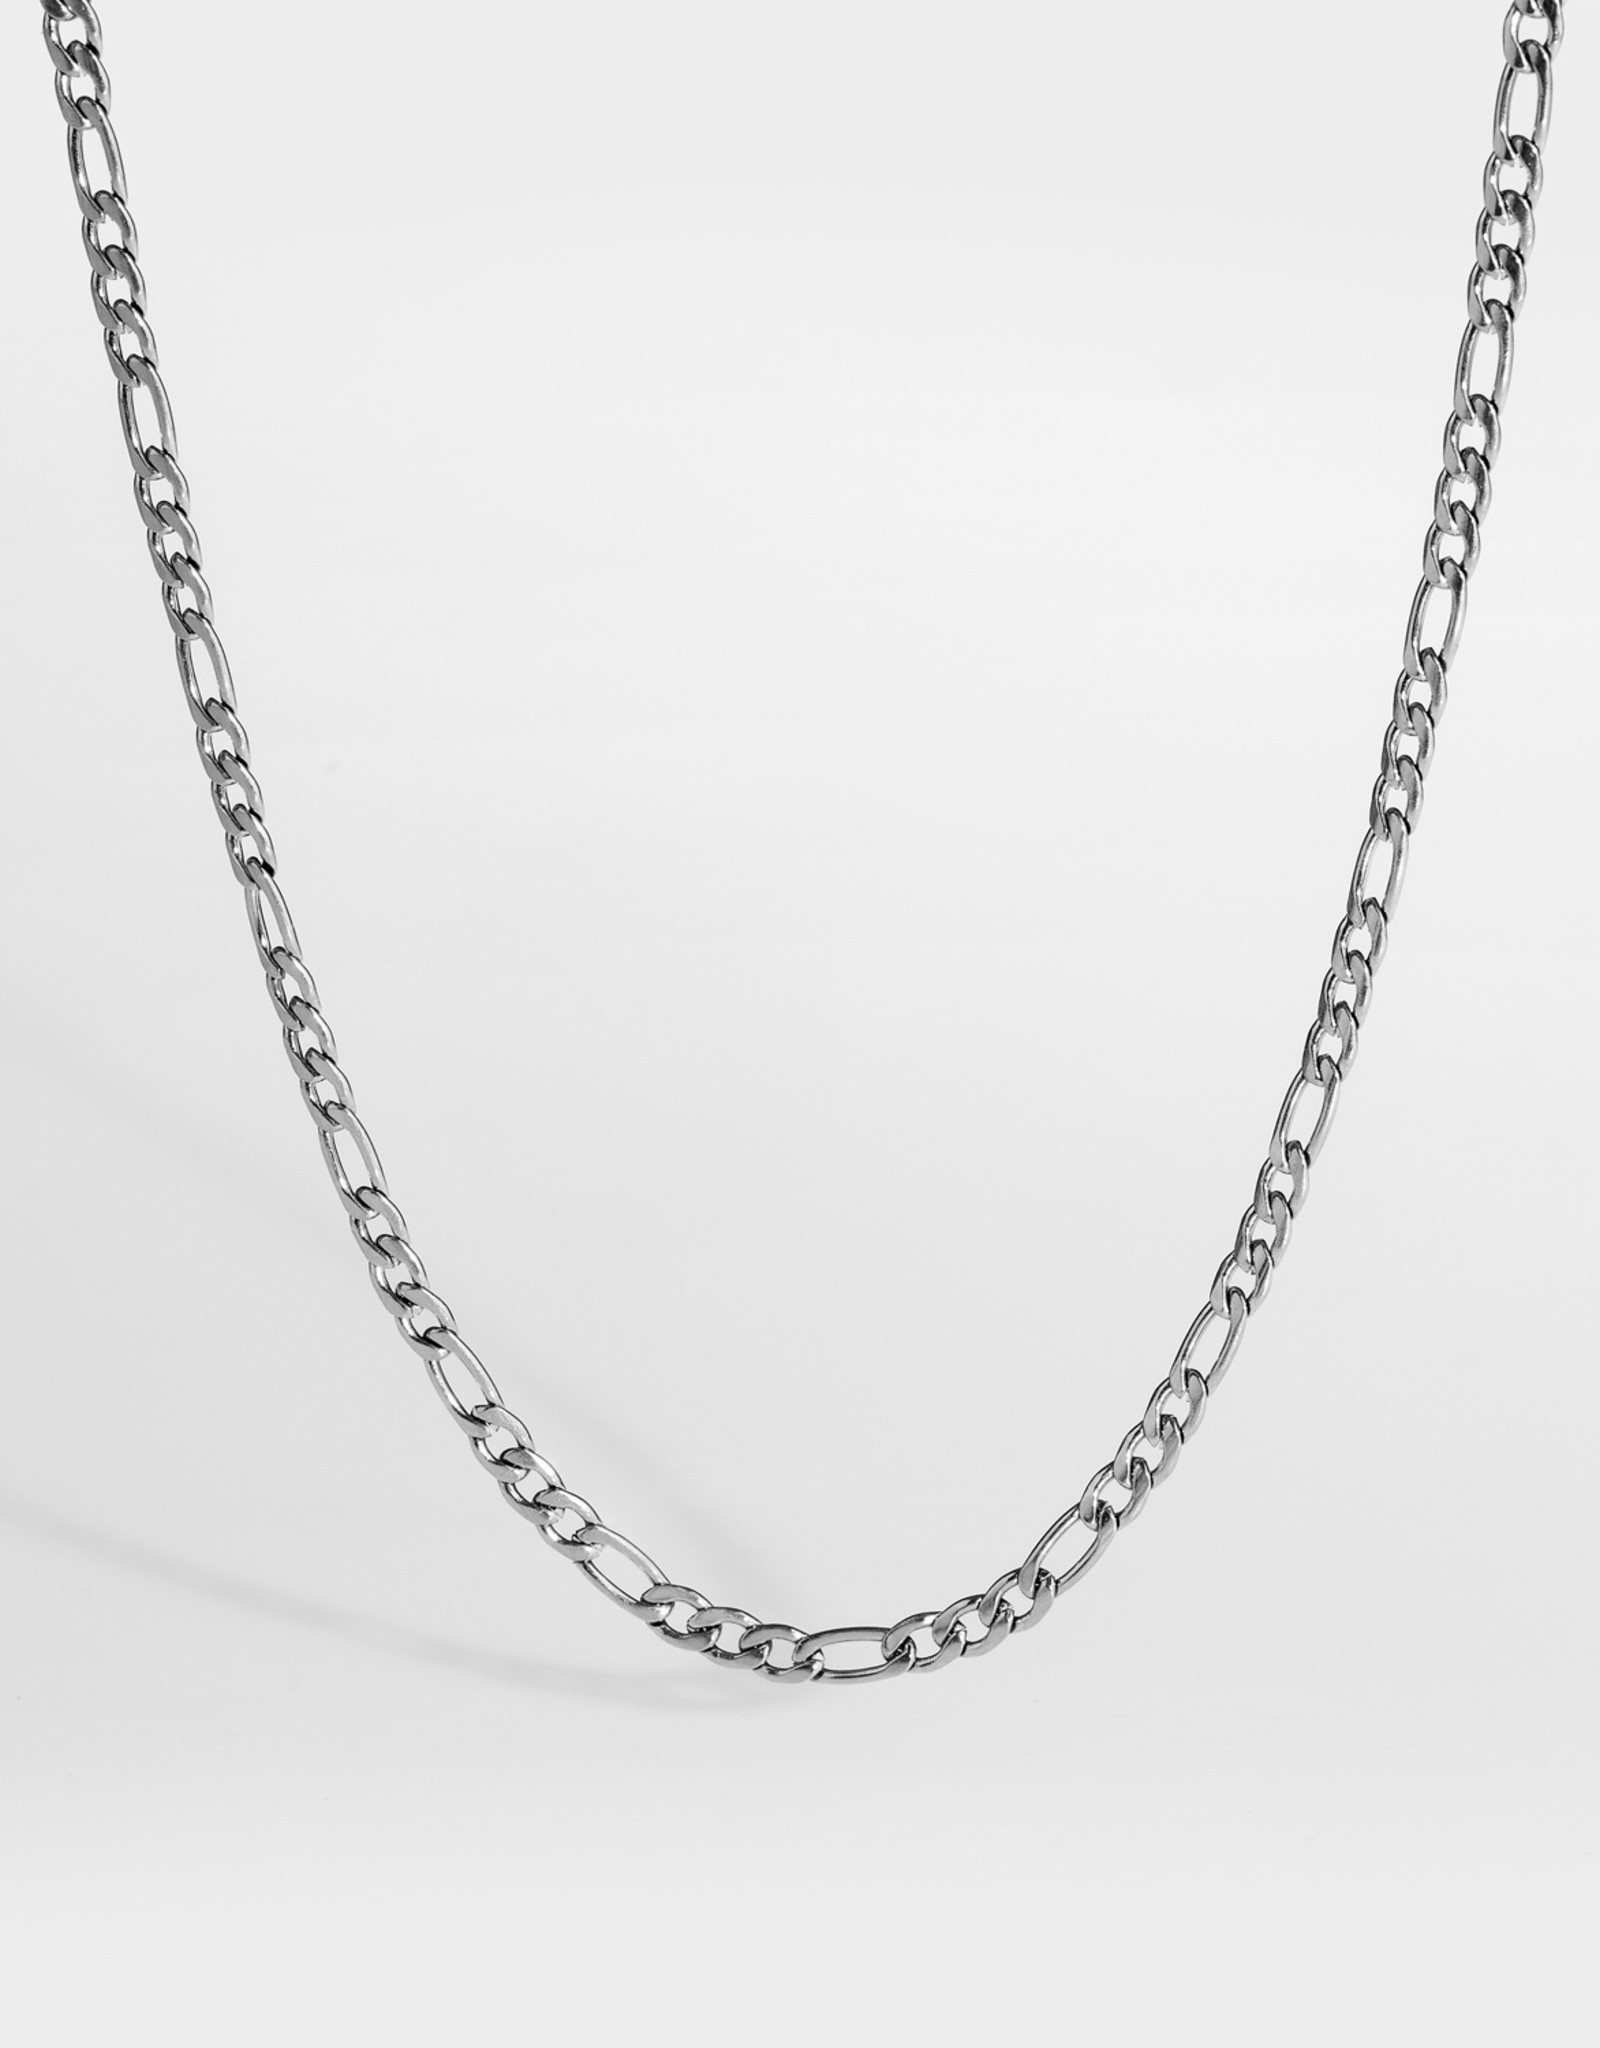 Northern Legacy nl antique chain - silver tone